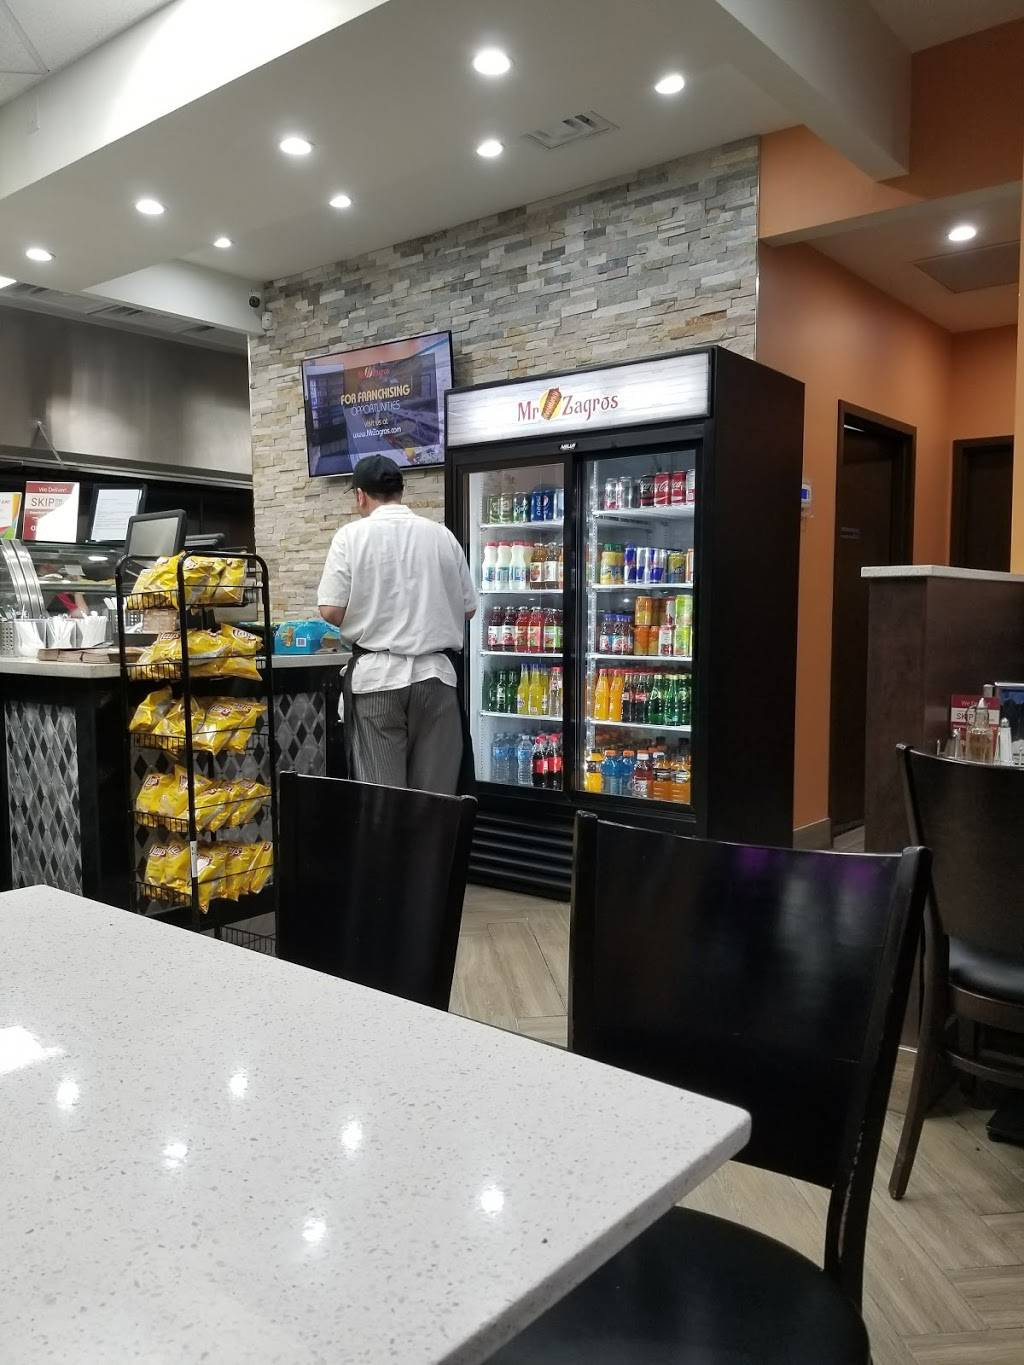 MR ZAGROS | restaurant | 6230 Finch Ave W, Etobicoke, ON M9V 0A1, Canada | 4167480010 OR +1 416-748-0010